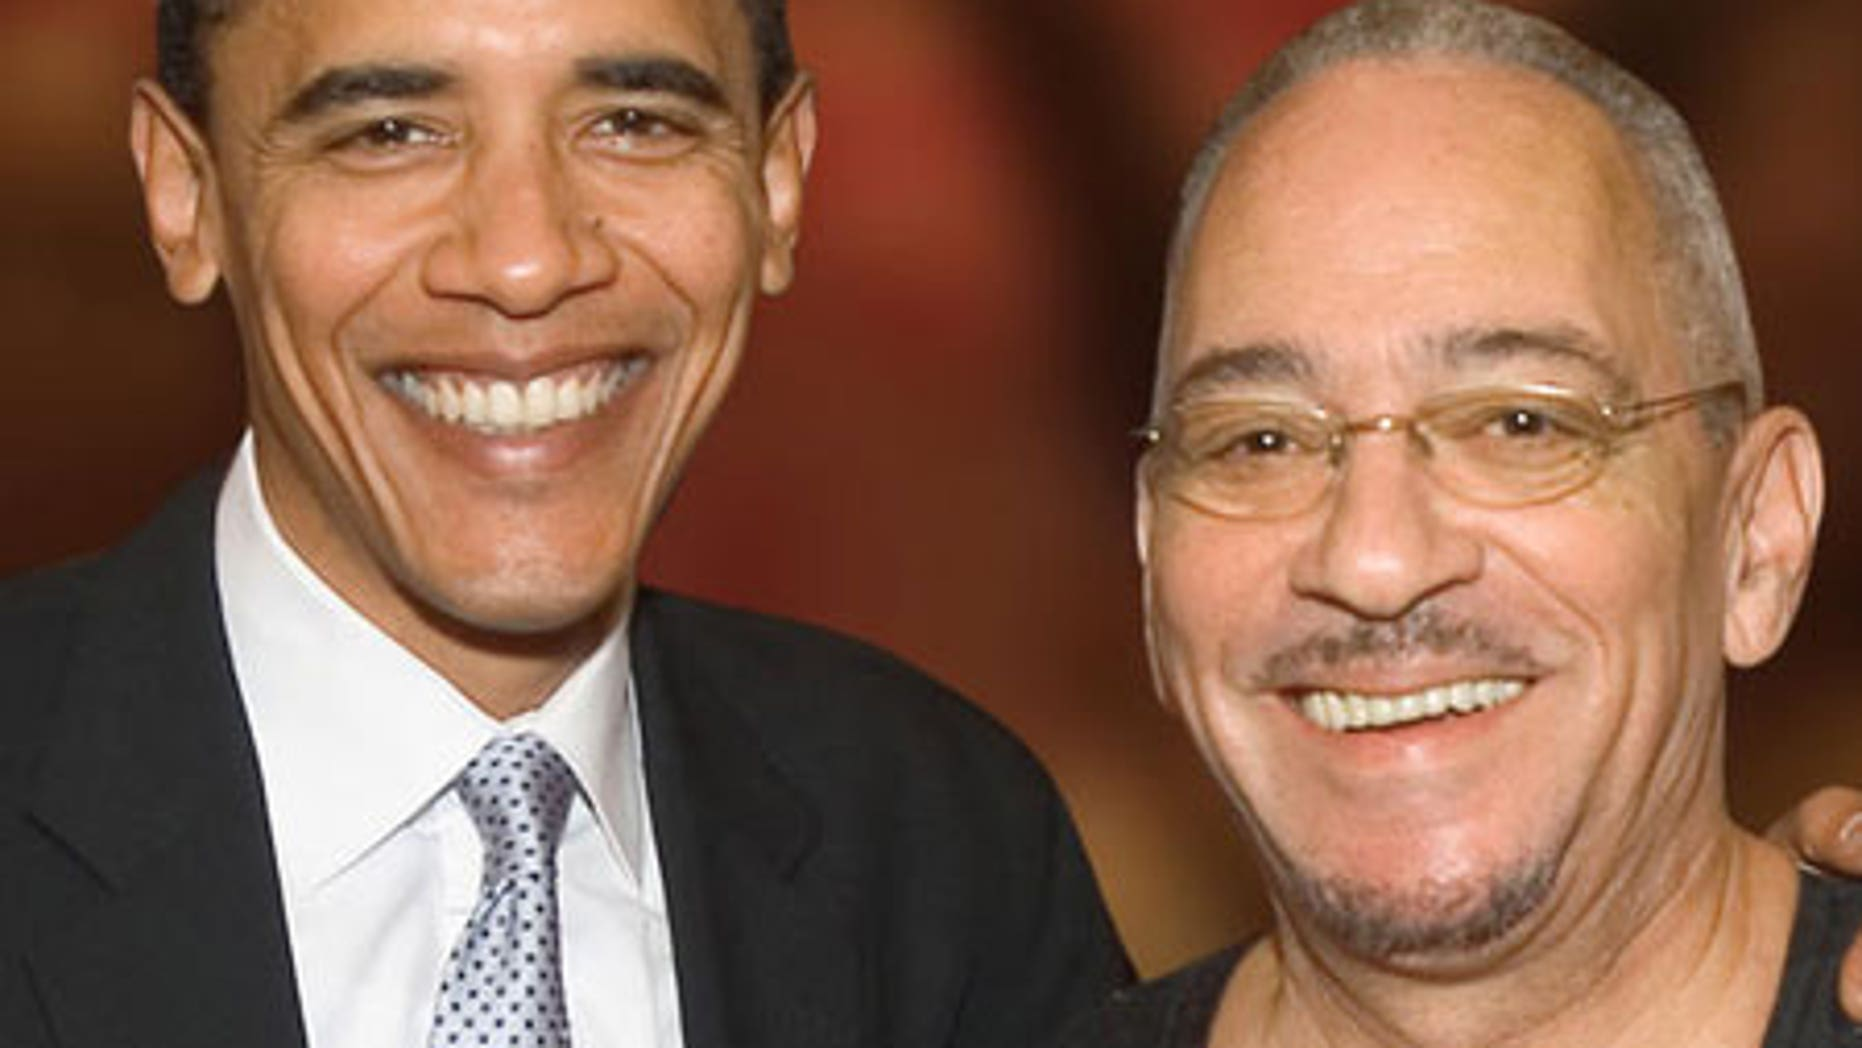 President Obama and the Rev. Jeremiah Wright